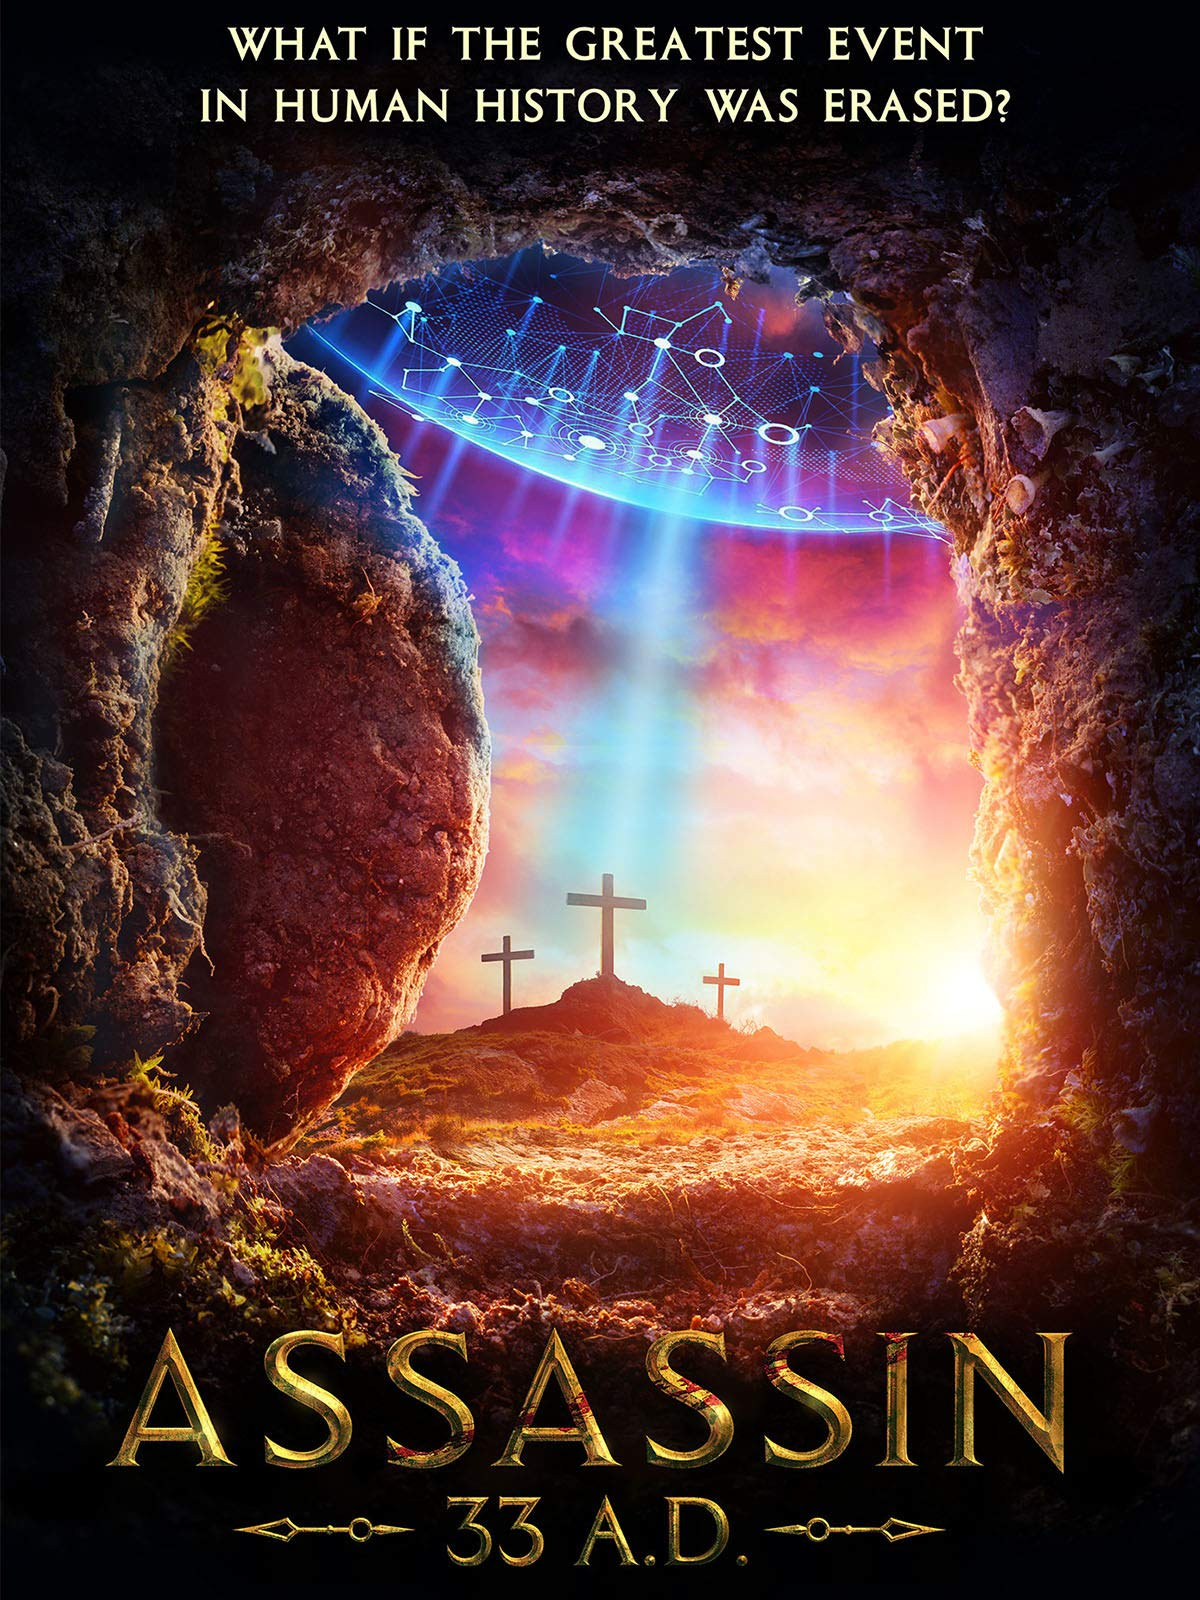 Assassin 33 A.D. on Amazon Prime Video UK